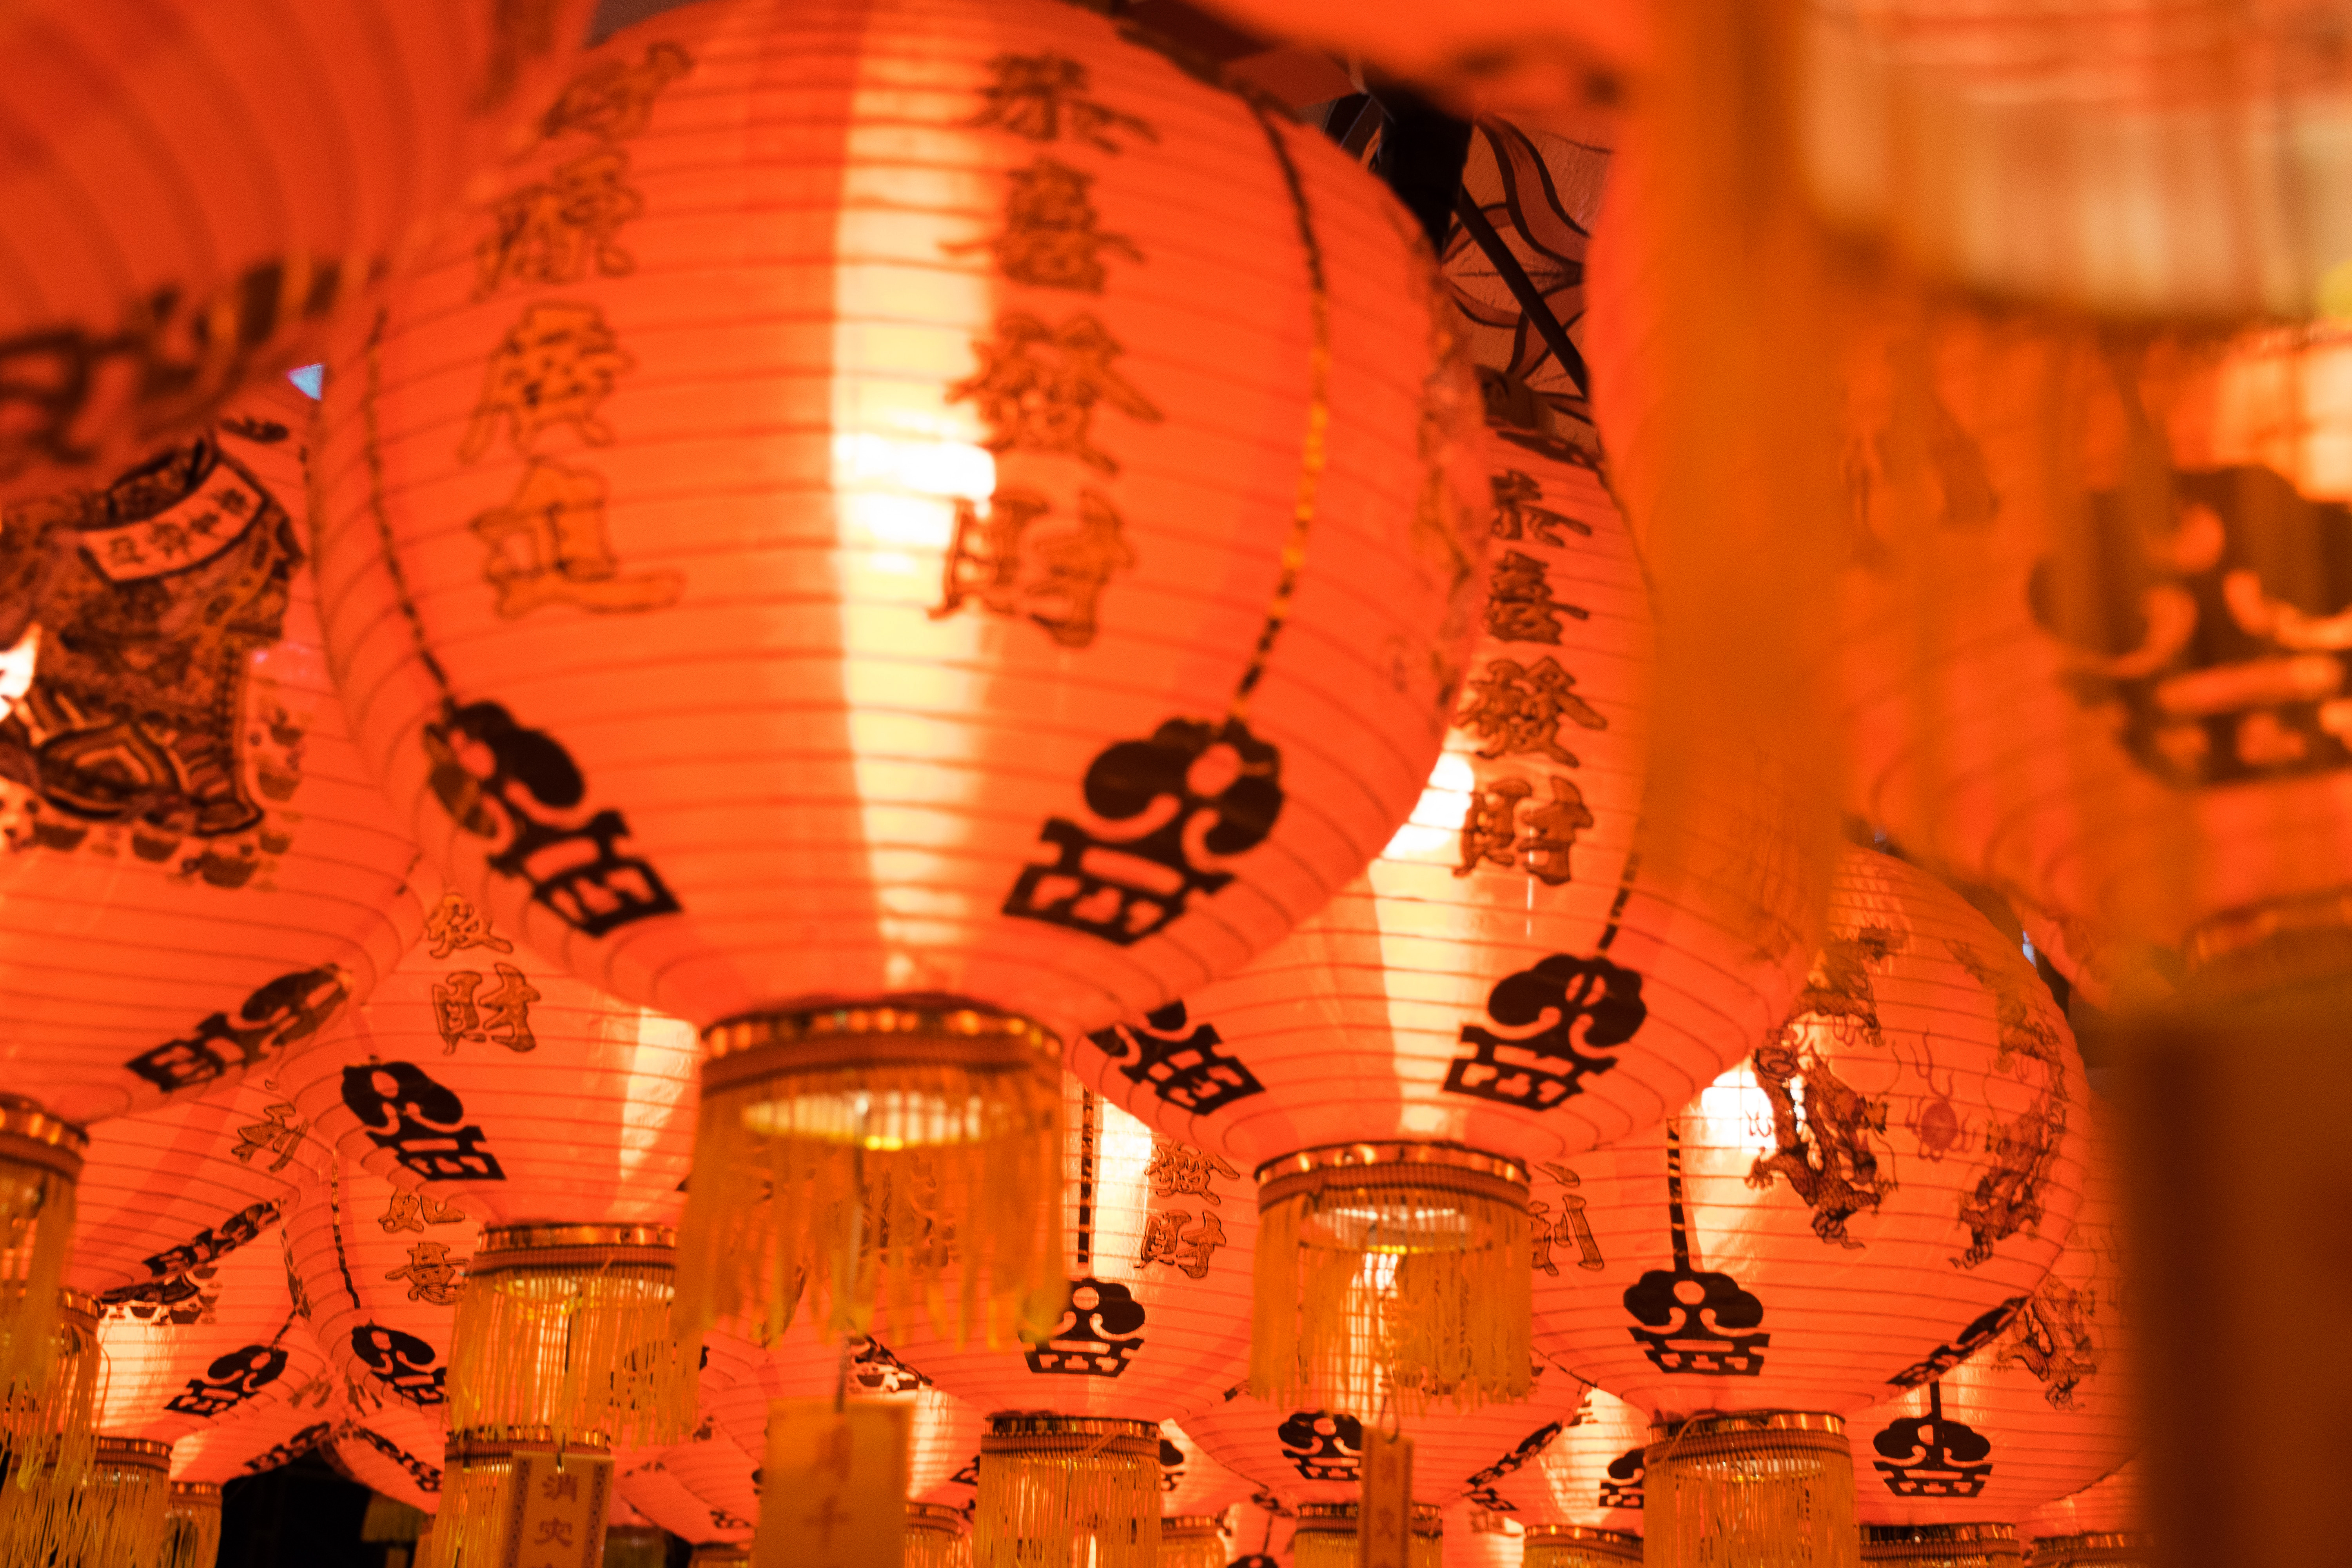 Lunar New Year in China, Chinese New Year, Lanterns